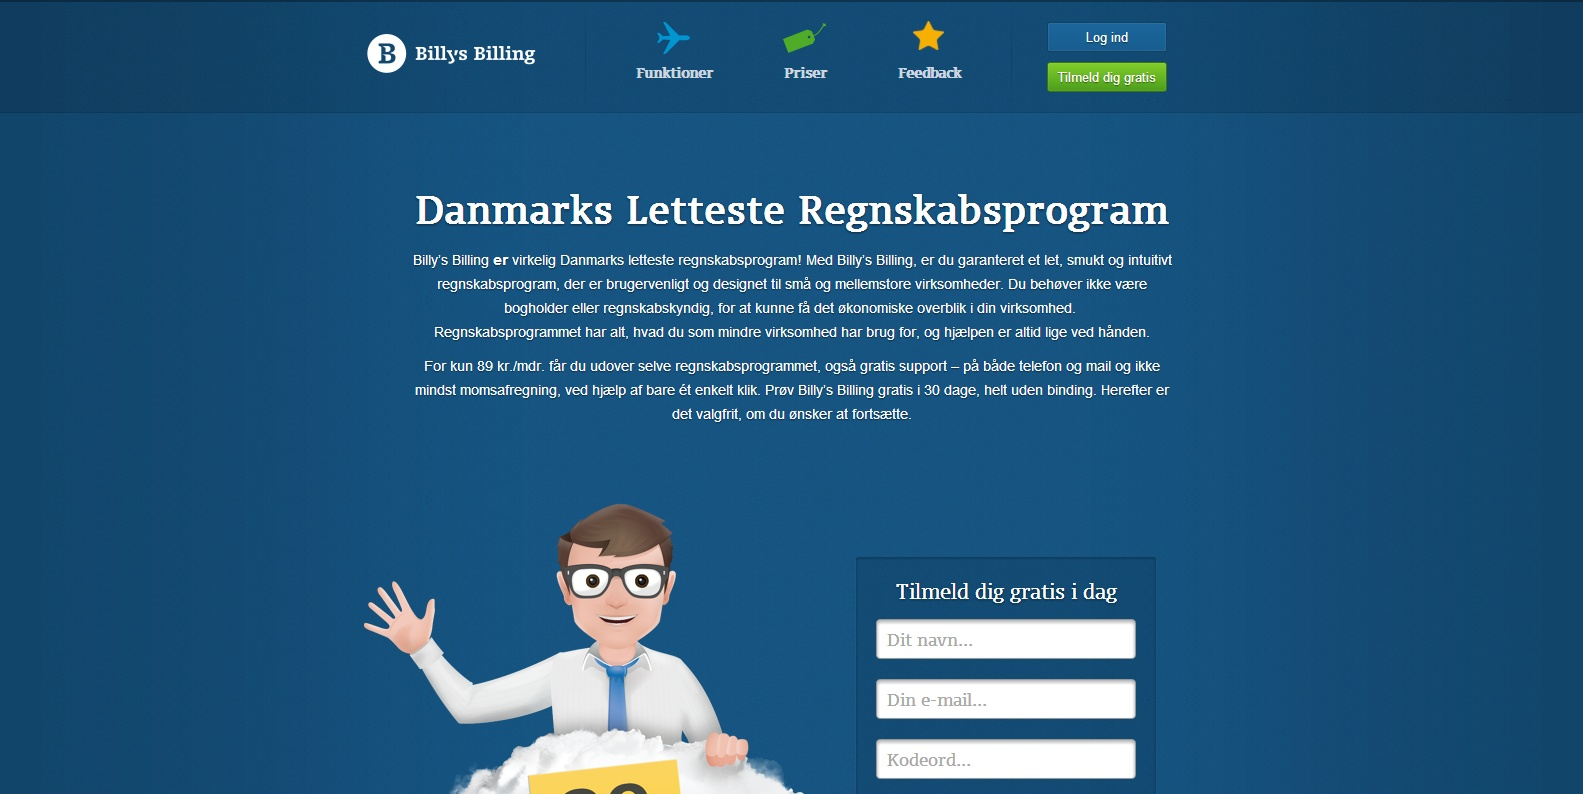 Billy's Billing stormer frem med version 2.0